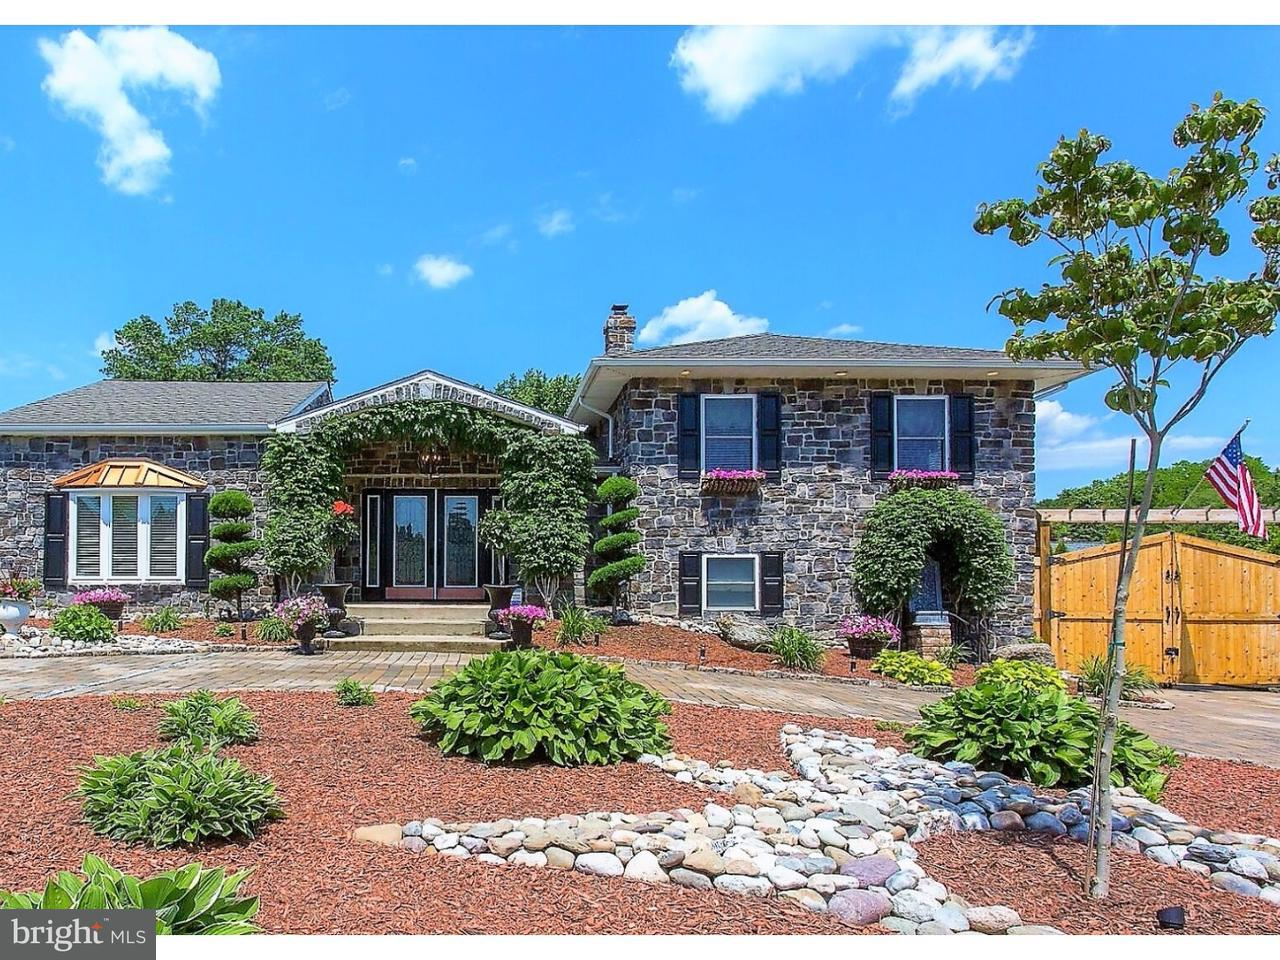 302 S New Ardmore Broomall, PA 19008